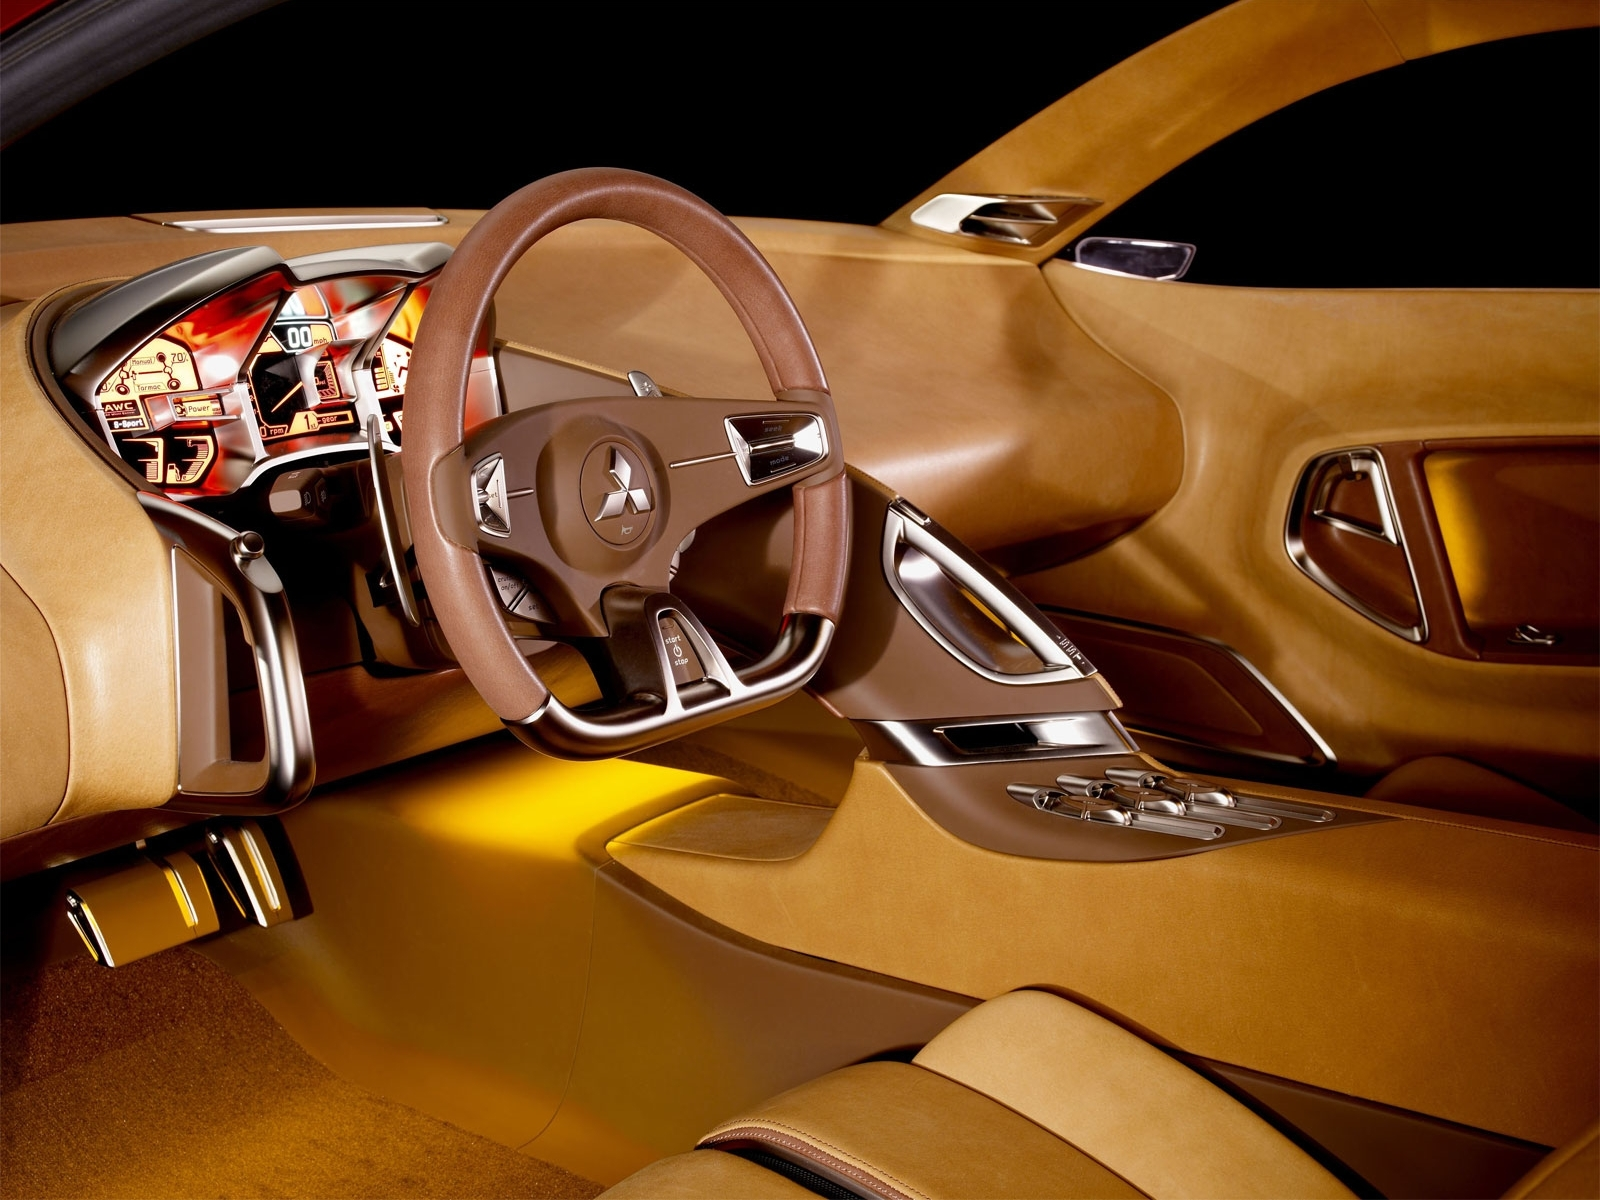 8210 download wallpaper Transport, Auto, Brands, Mitsubishi, Interior screensavers and pictures for free